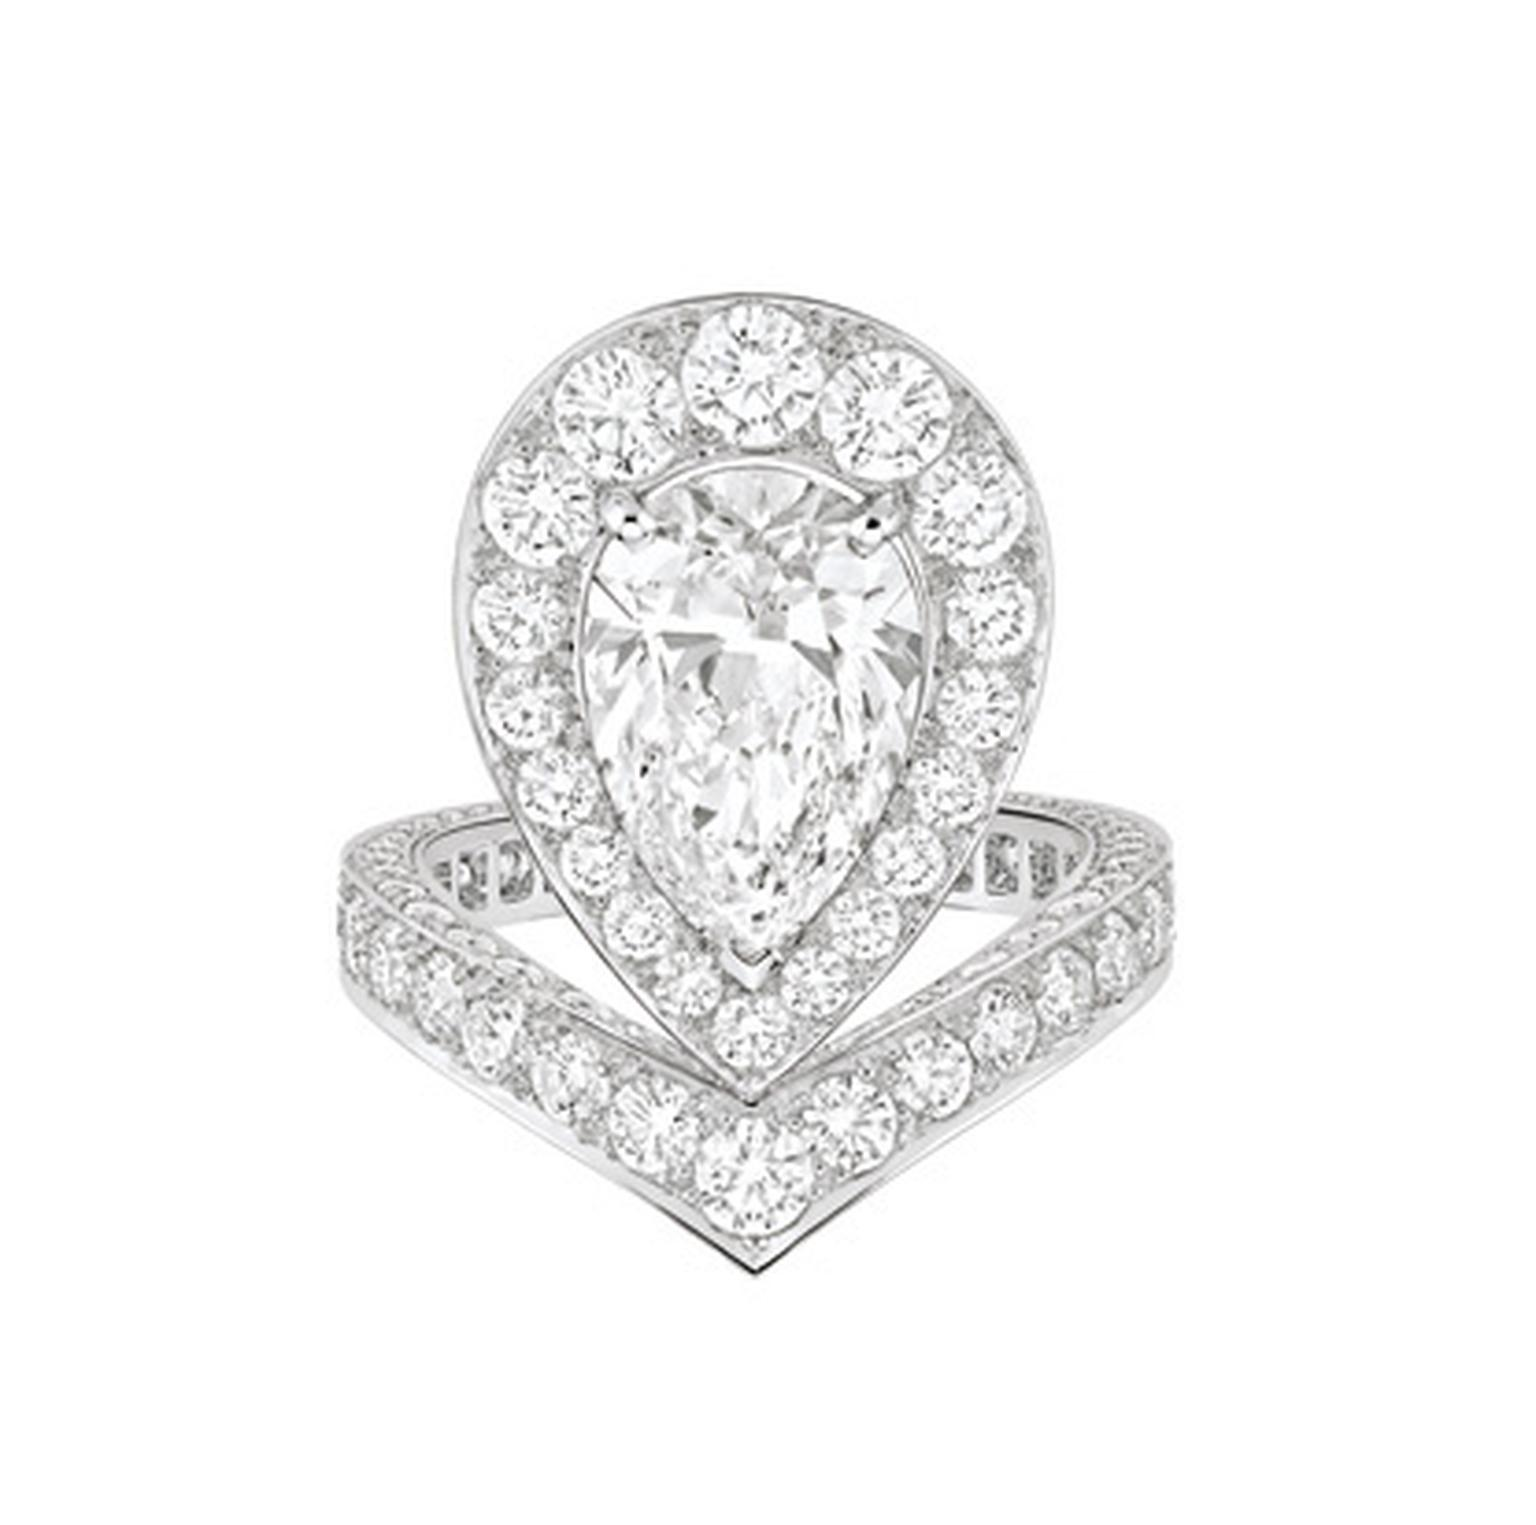 Chaumet-bague_2_photo.jpg